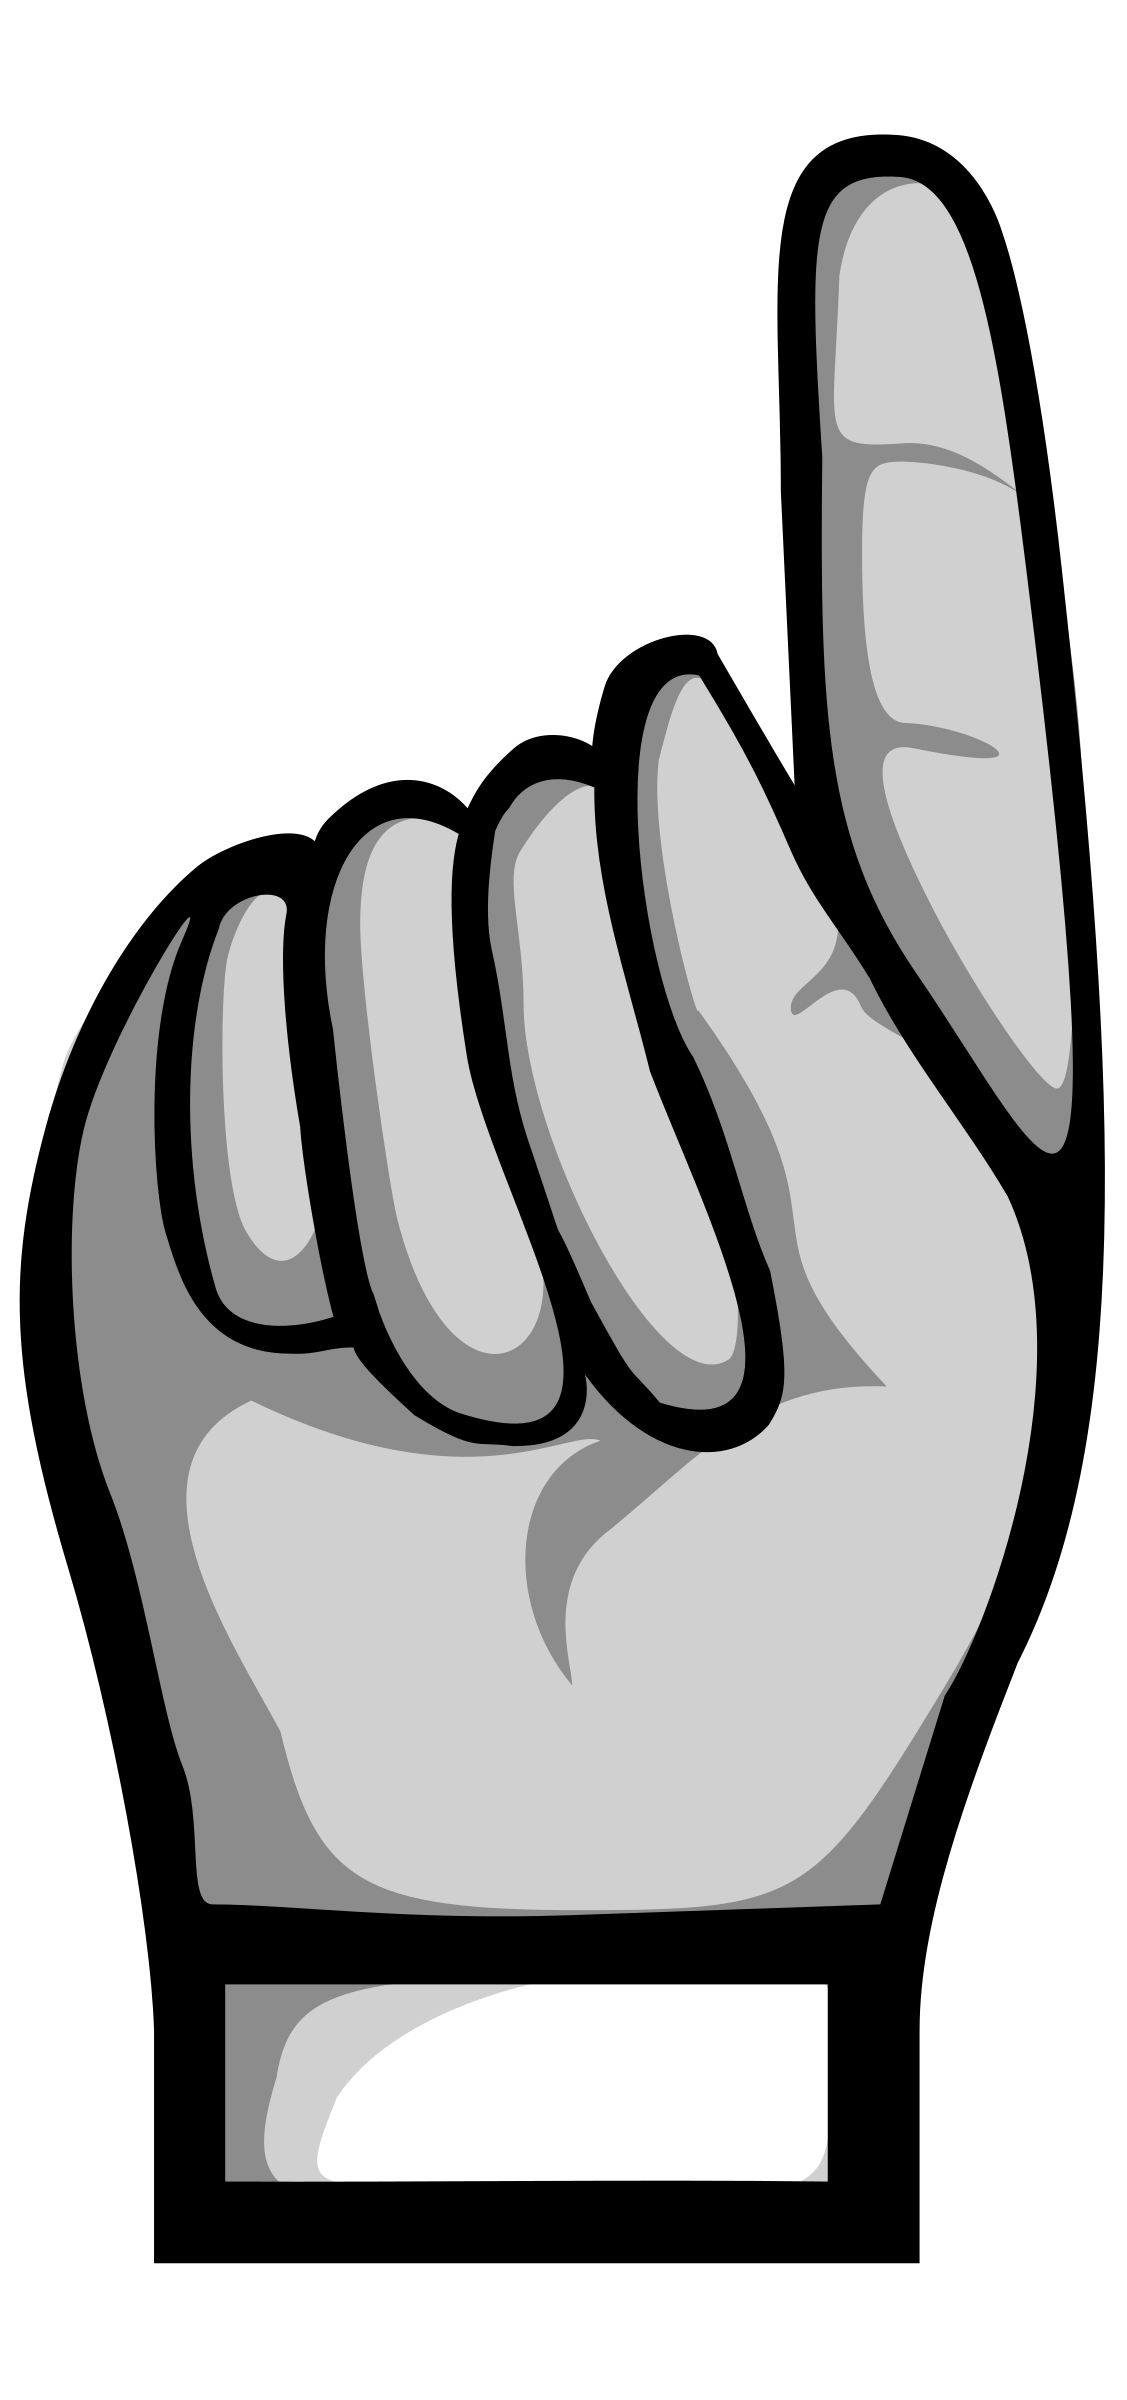 Up Hand Pointing Clipart.